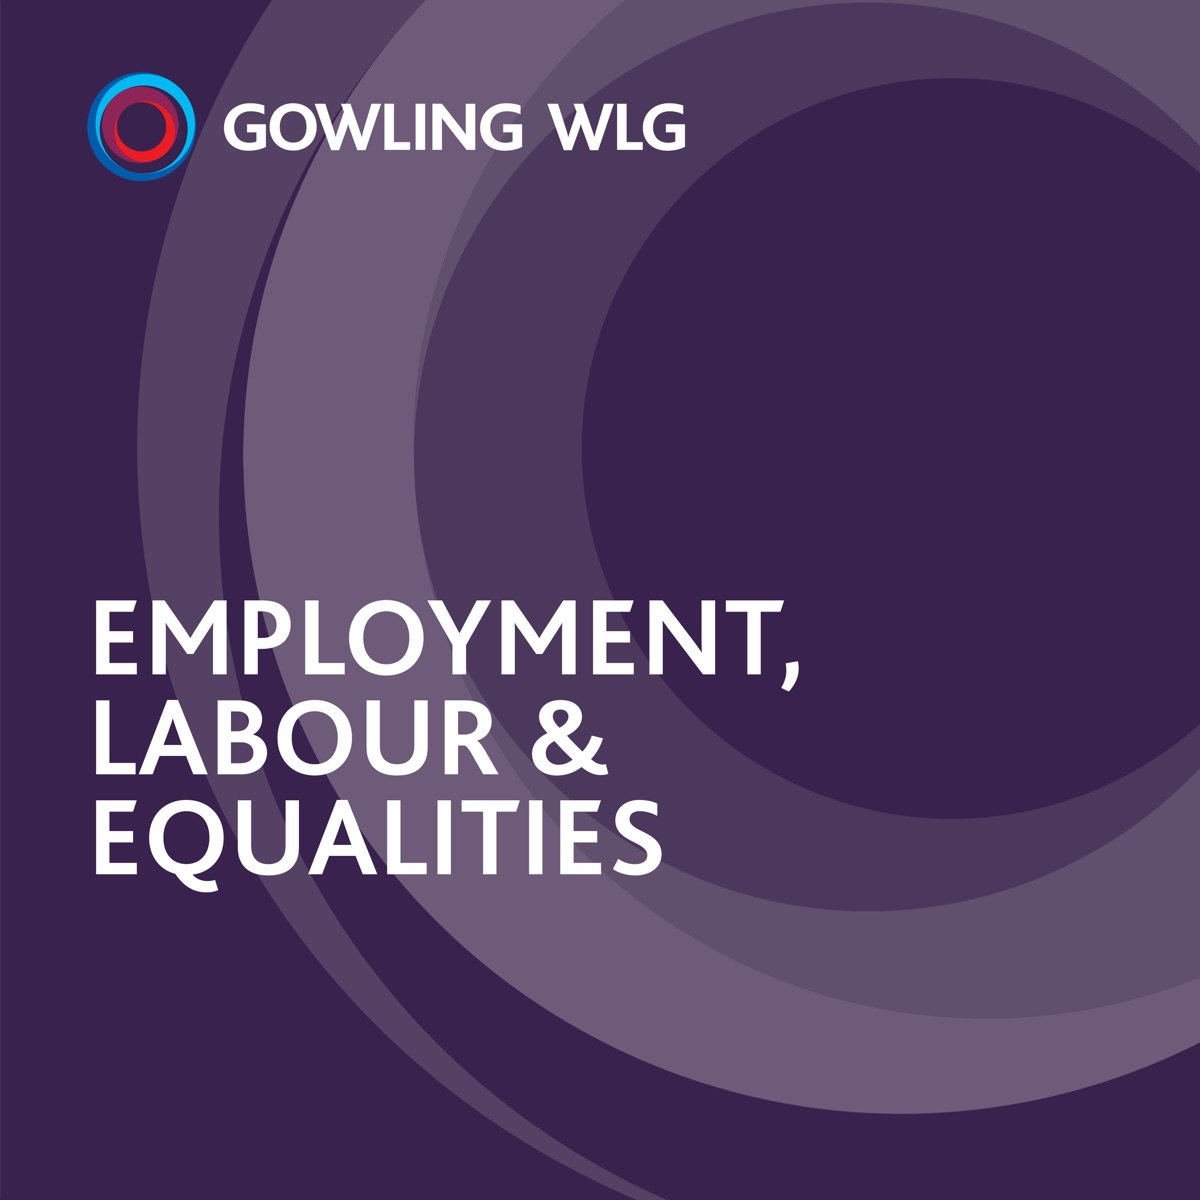 Employment, Labour & Equalities - Gowling WLG